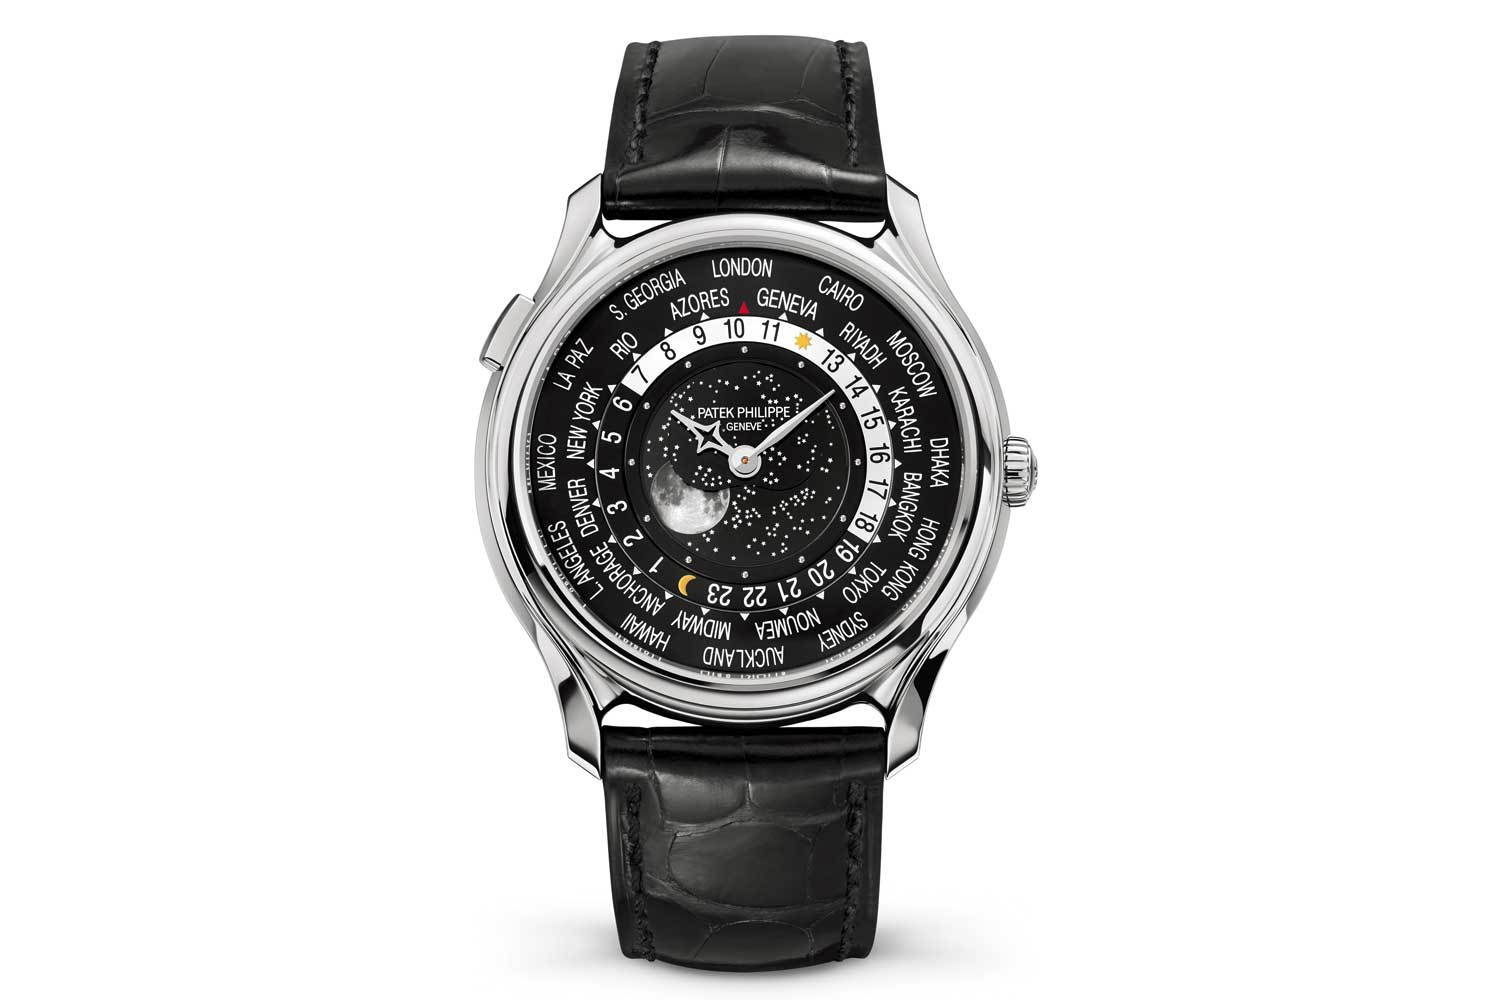 The ref. 5575 was also offered in a 39.8mm white gold case, limited to 1300 pieces.